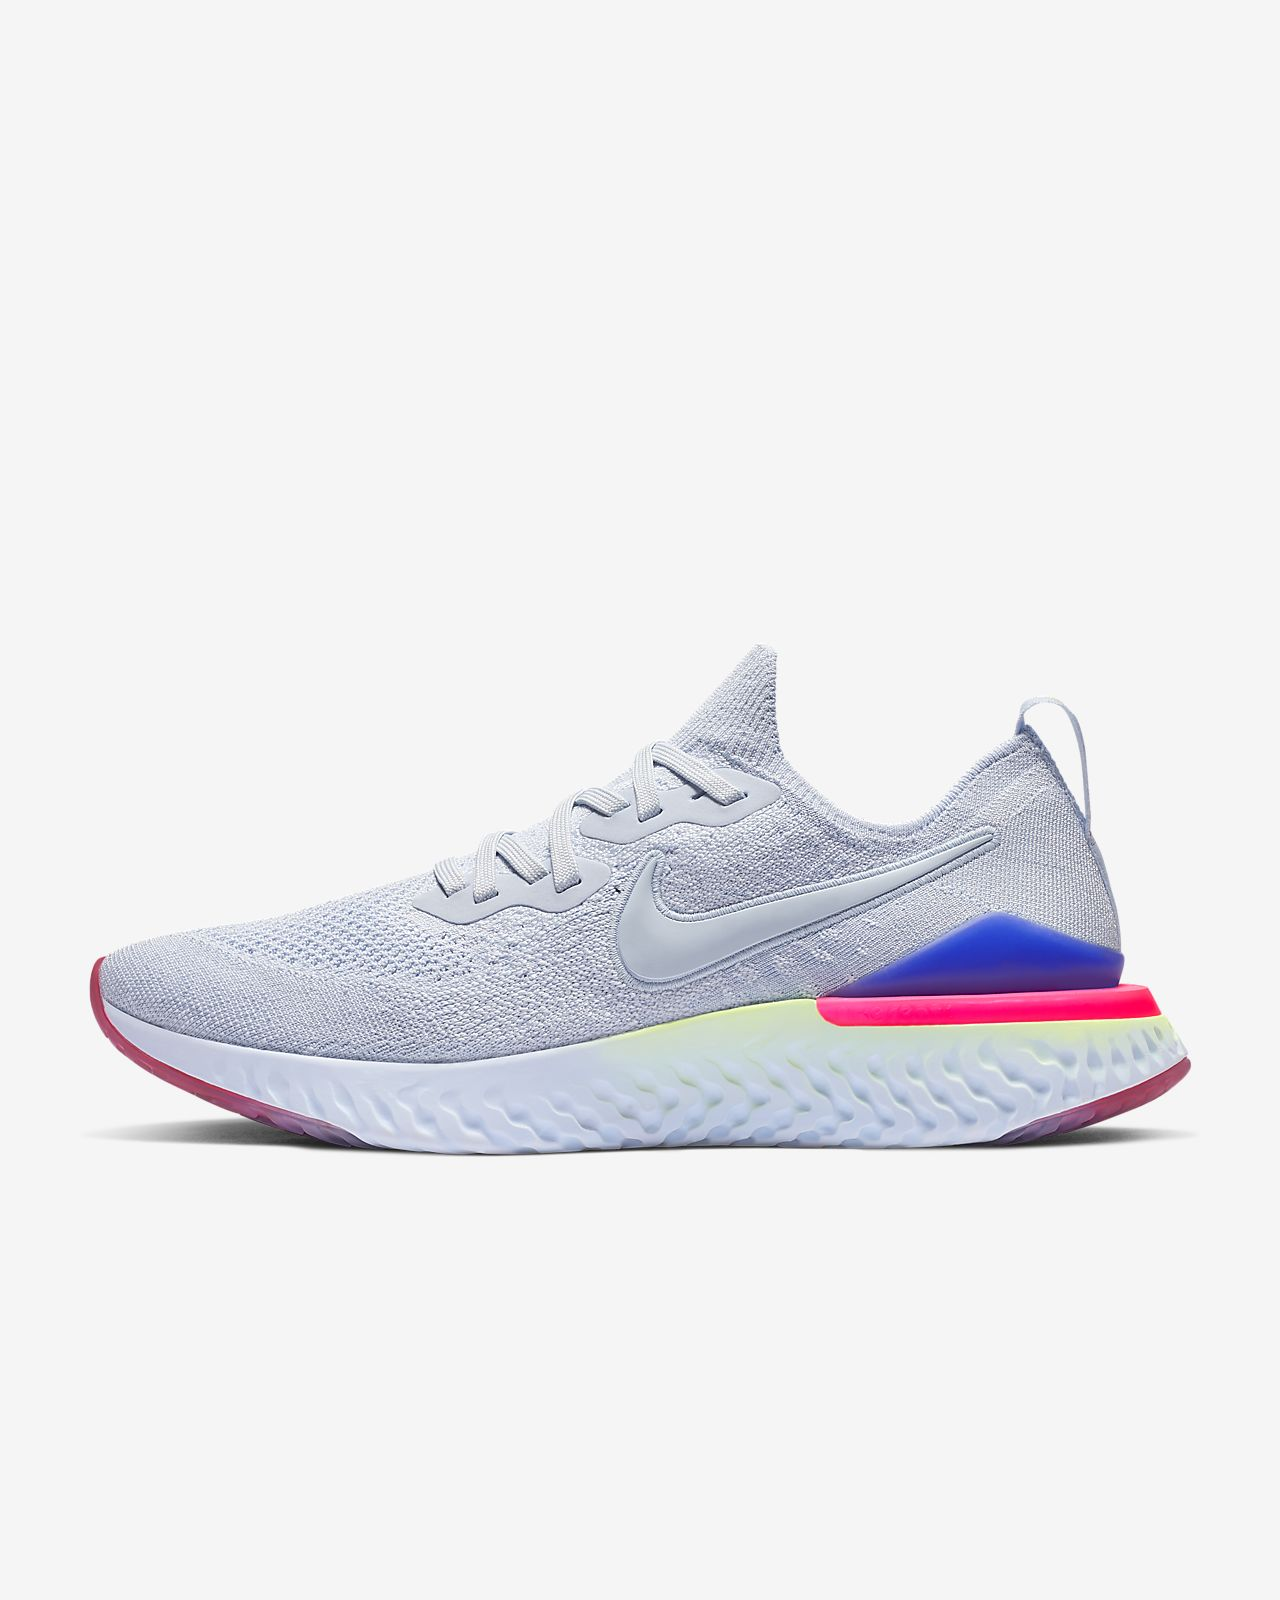 3dd7d2834bbd Nike Epic React Flyknit 2 Men s Running Shoe. Nike.com